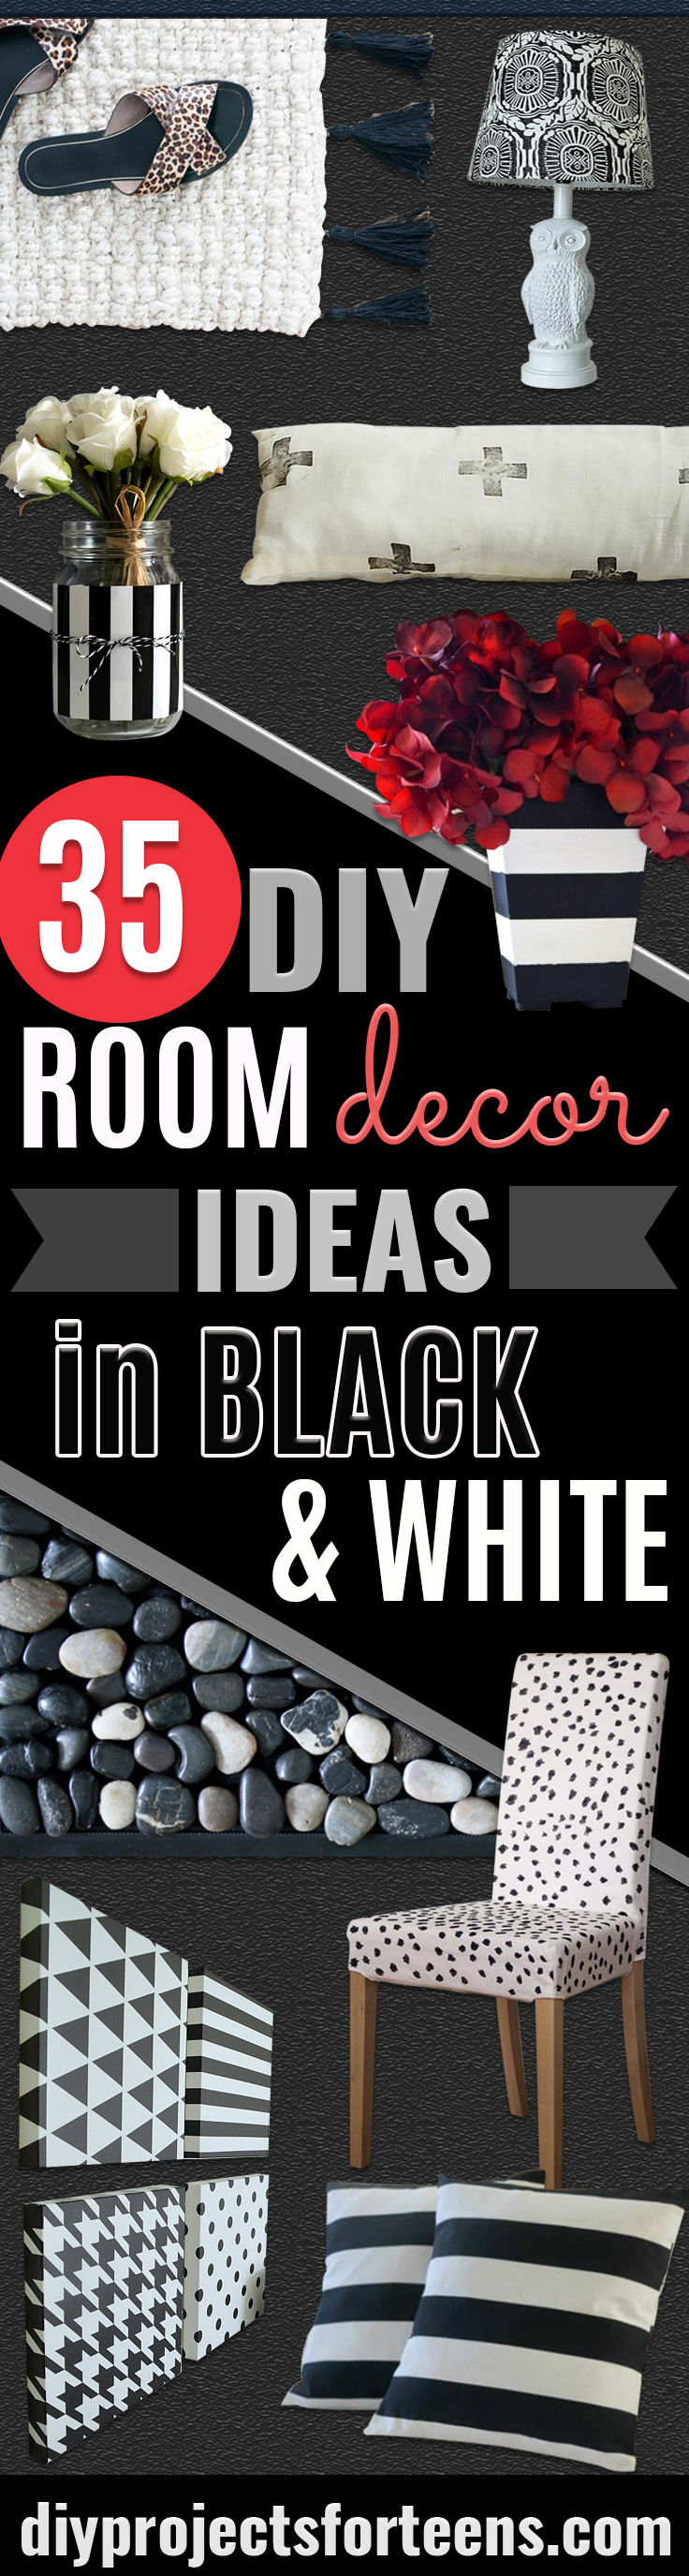 35 diy room decor ideas in black and white - diy projects for teens